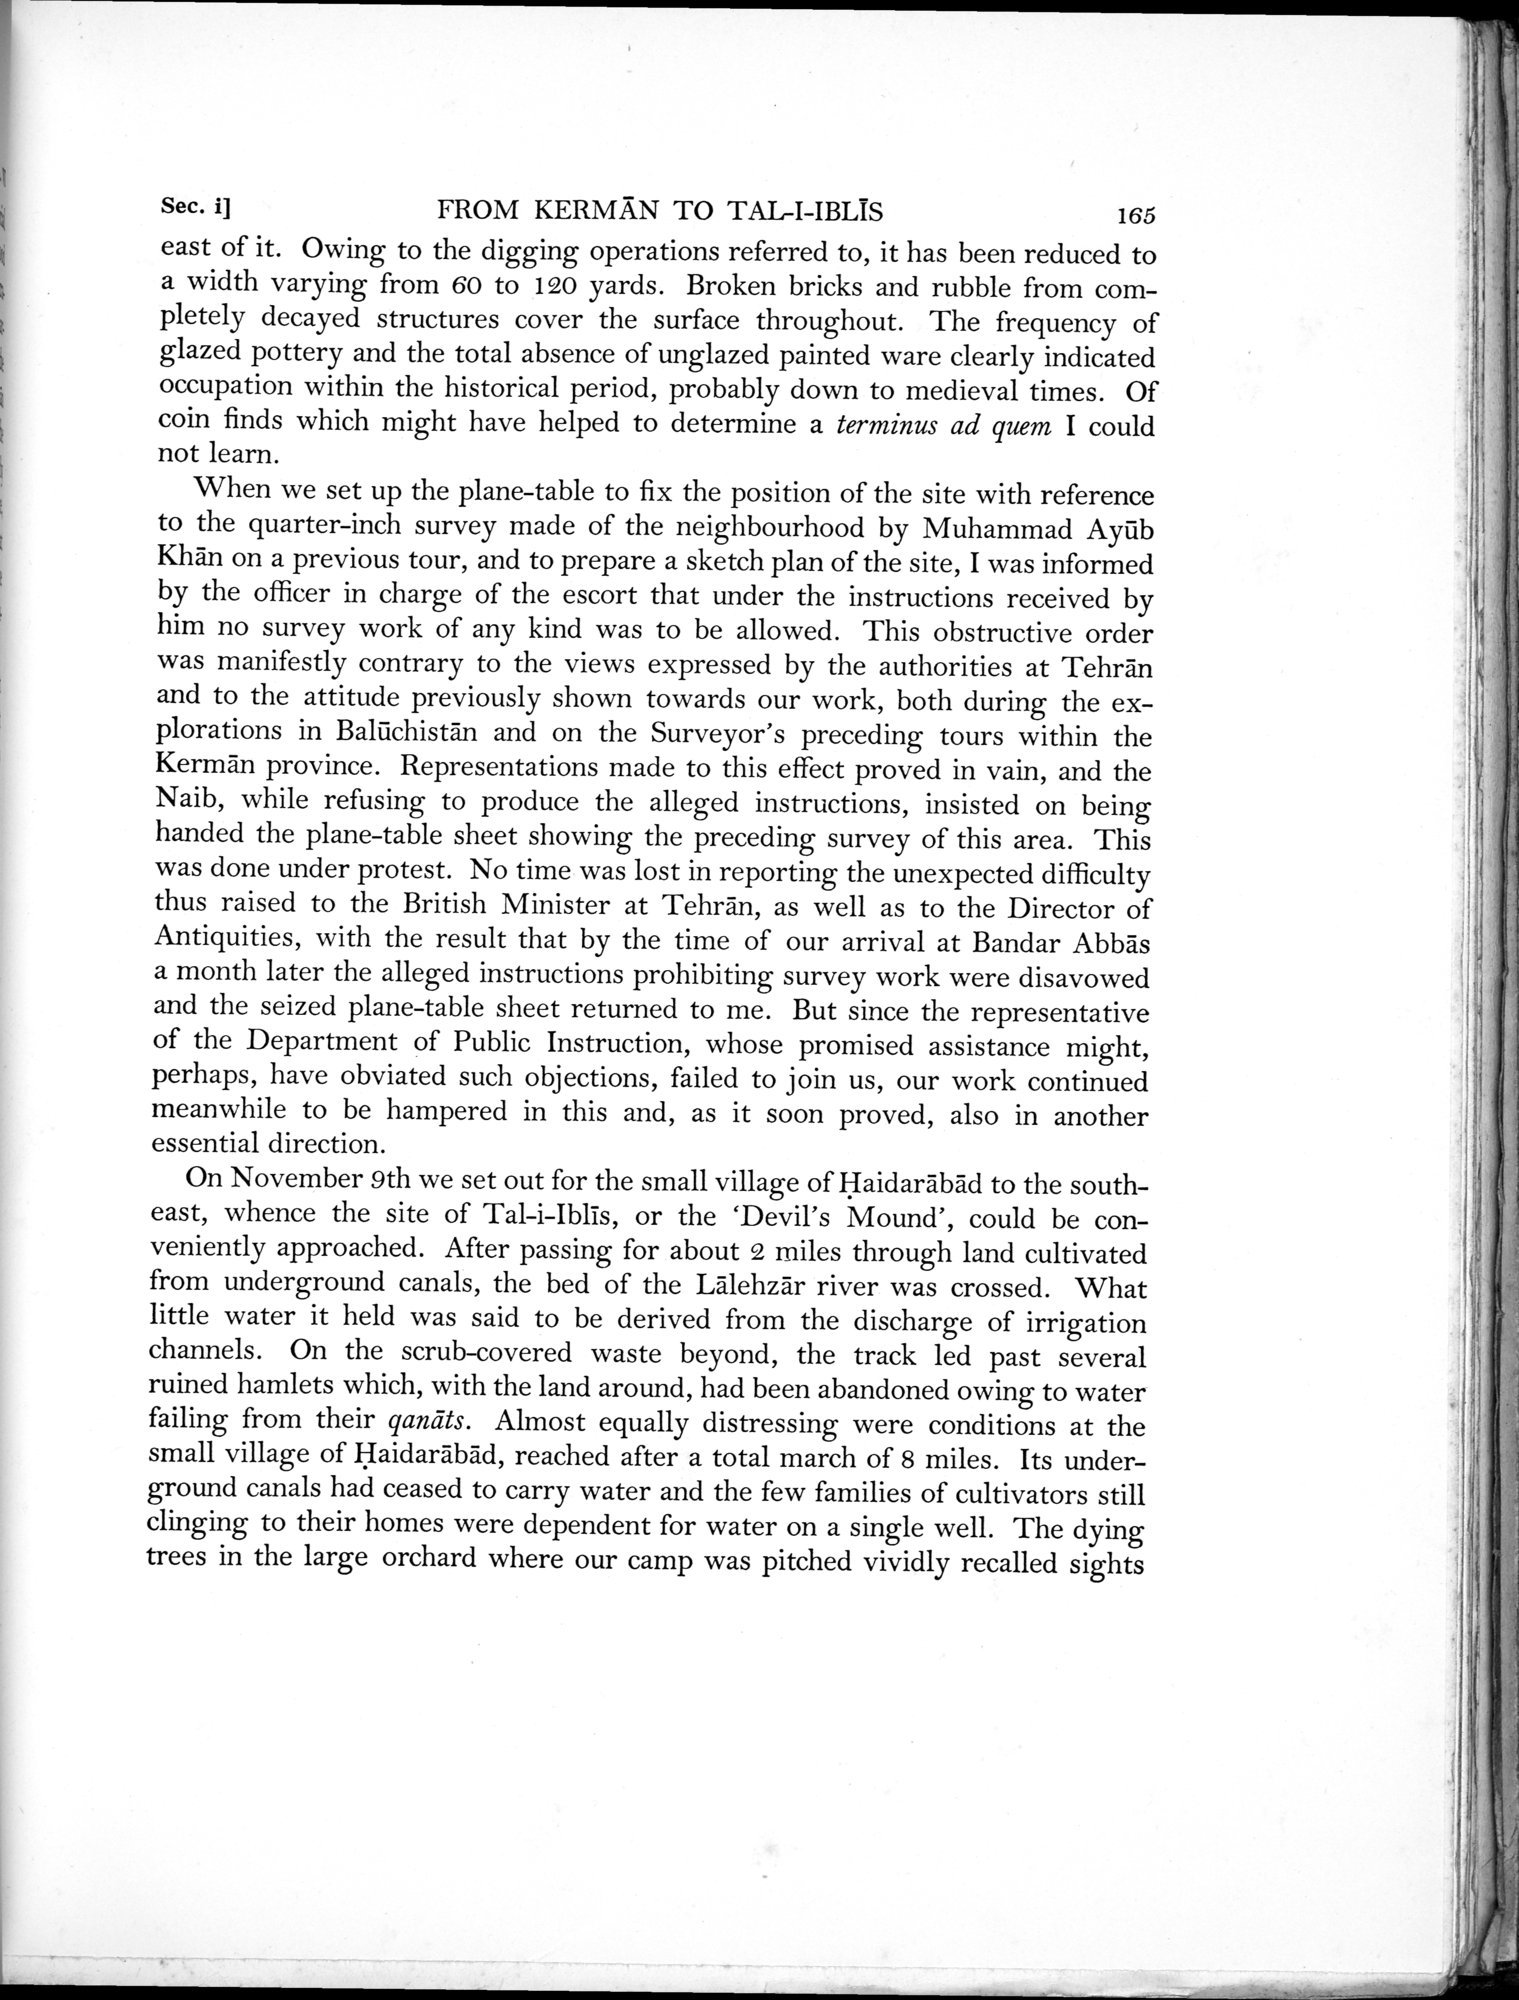 Archaeological Reconnaissances in North-Western India and South-Eastern Īrān : vol.1 / Page 227 (Grayscale High Resolution Image)